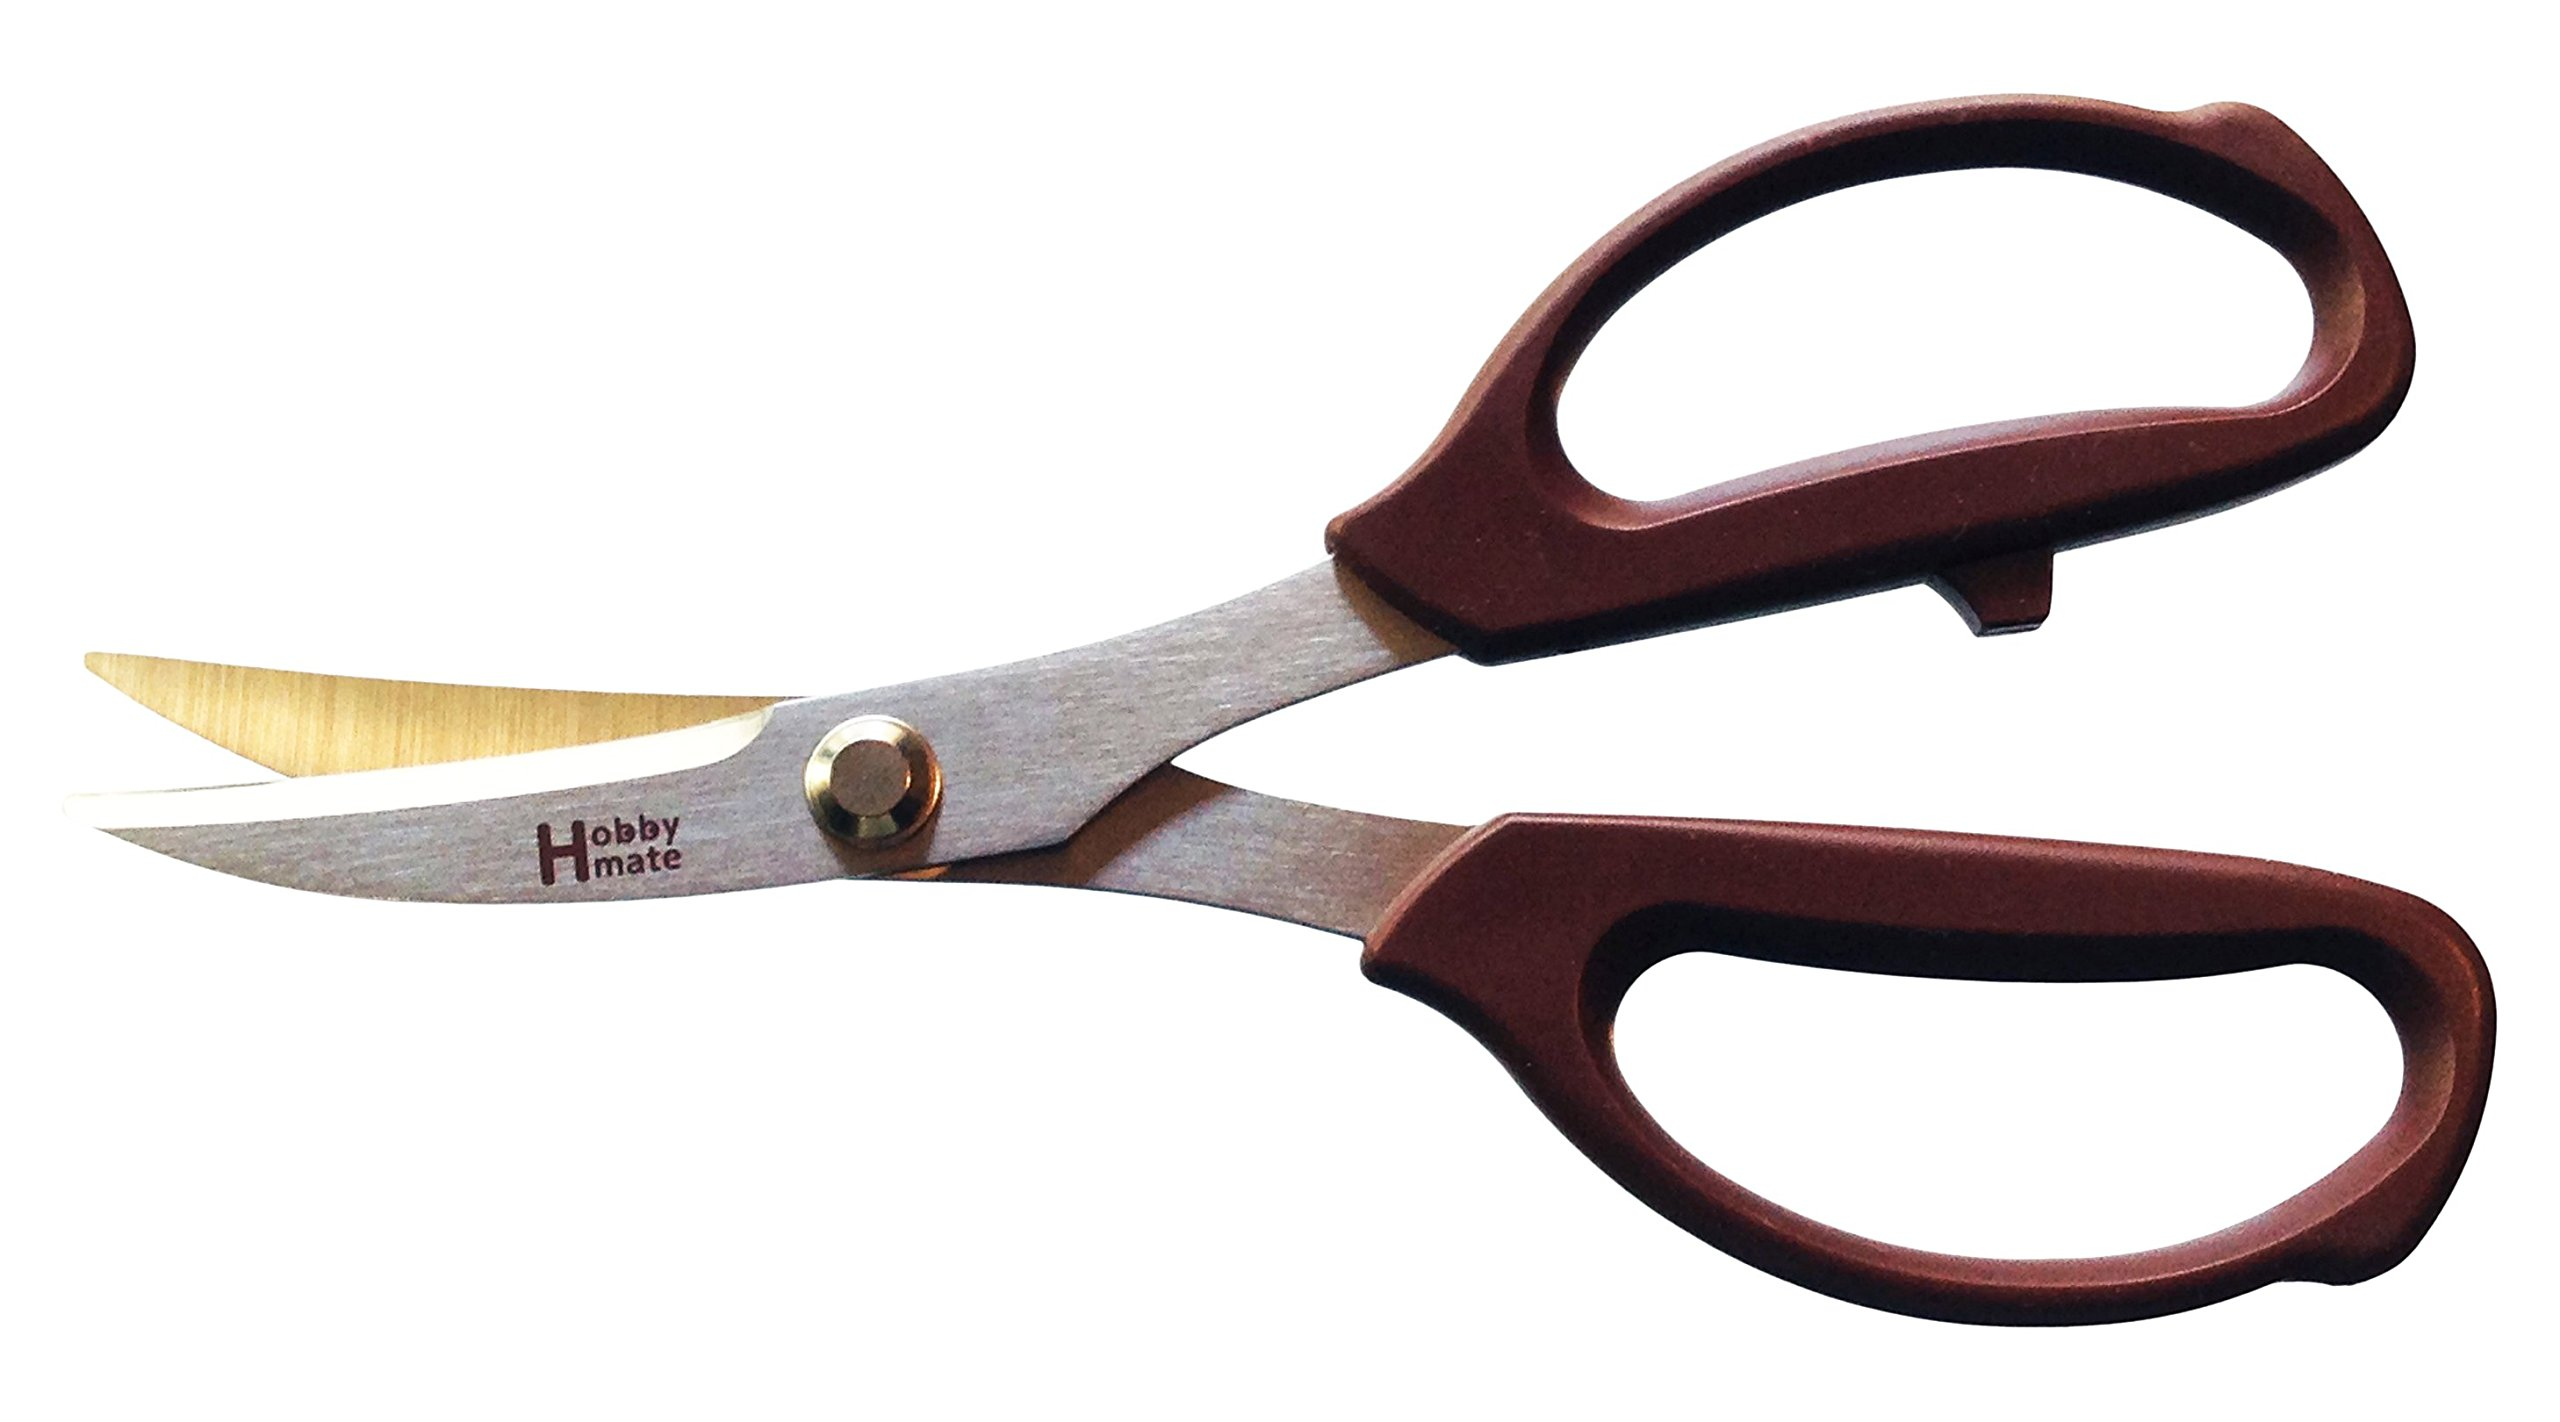 Hanada Home 77-1031 Leather Cutting Hobby Mate Scissors by Shark Corp (Image #1)